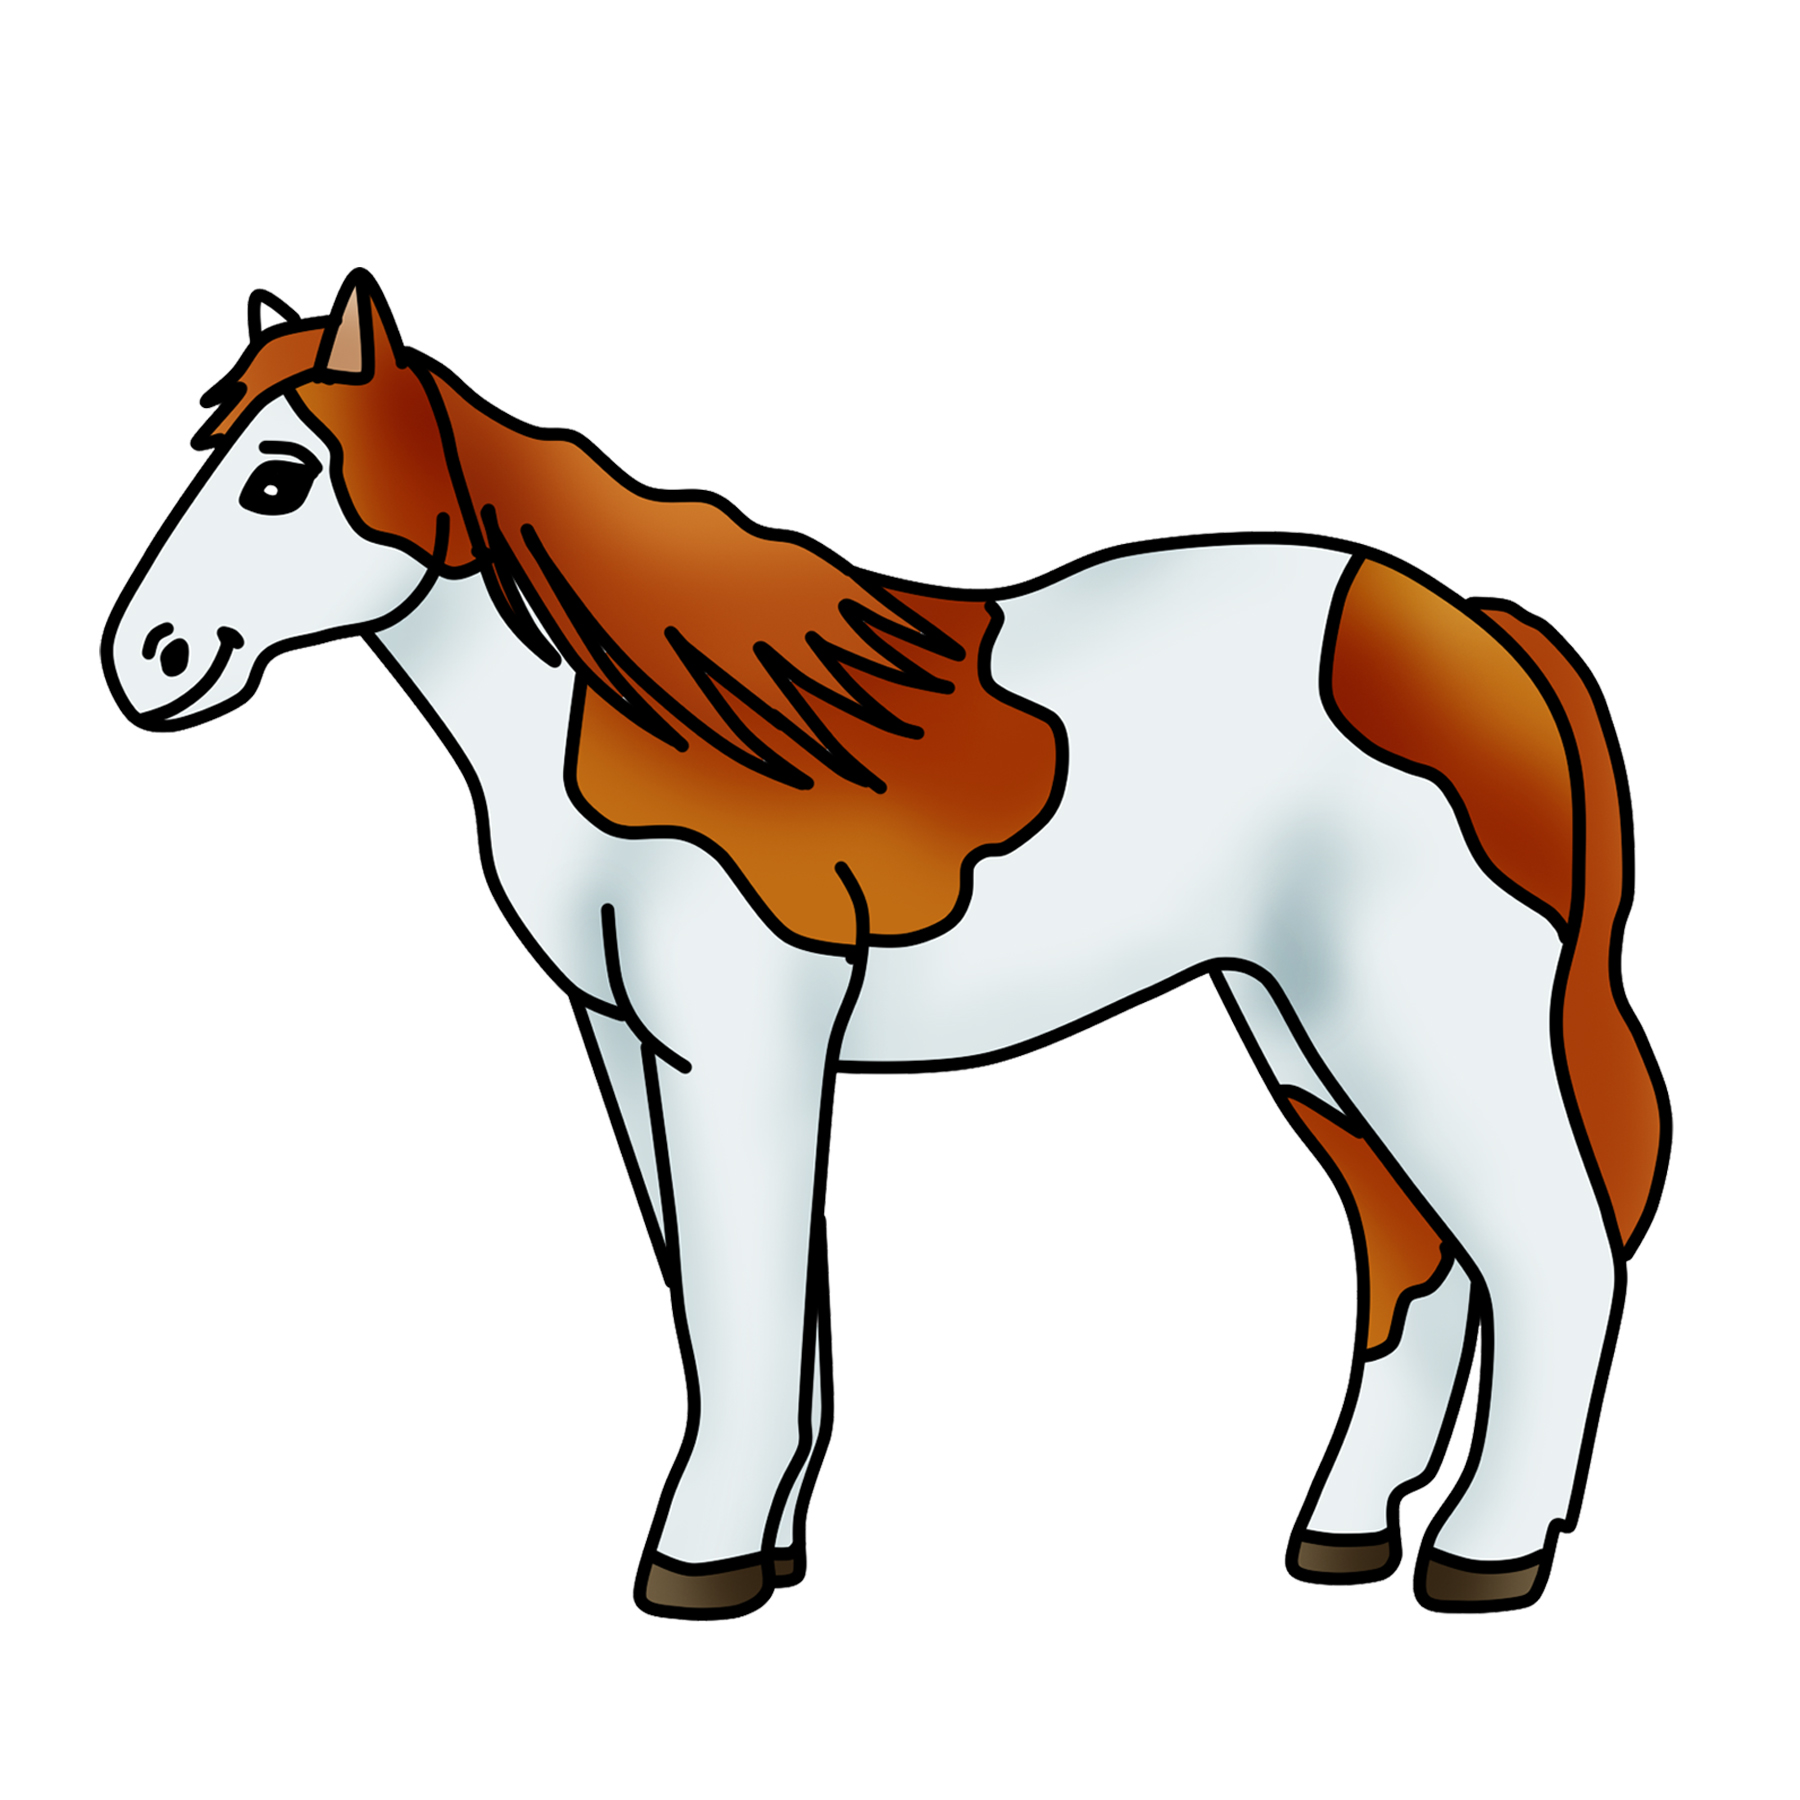 Horse clipart pic picture royalty free download Spotted Horse Clipart Pony Graphic - Free Clipart by Clipart 4 School picture royalty free download